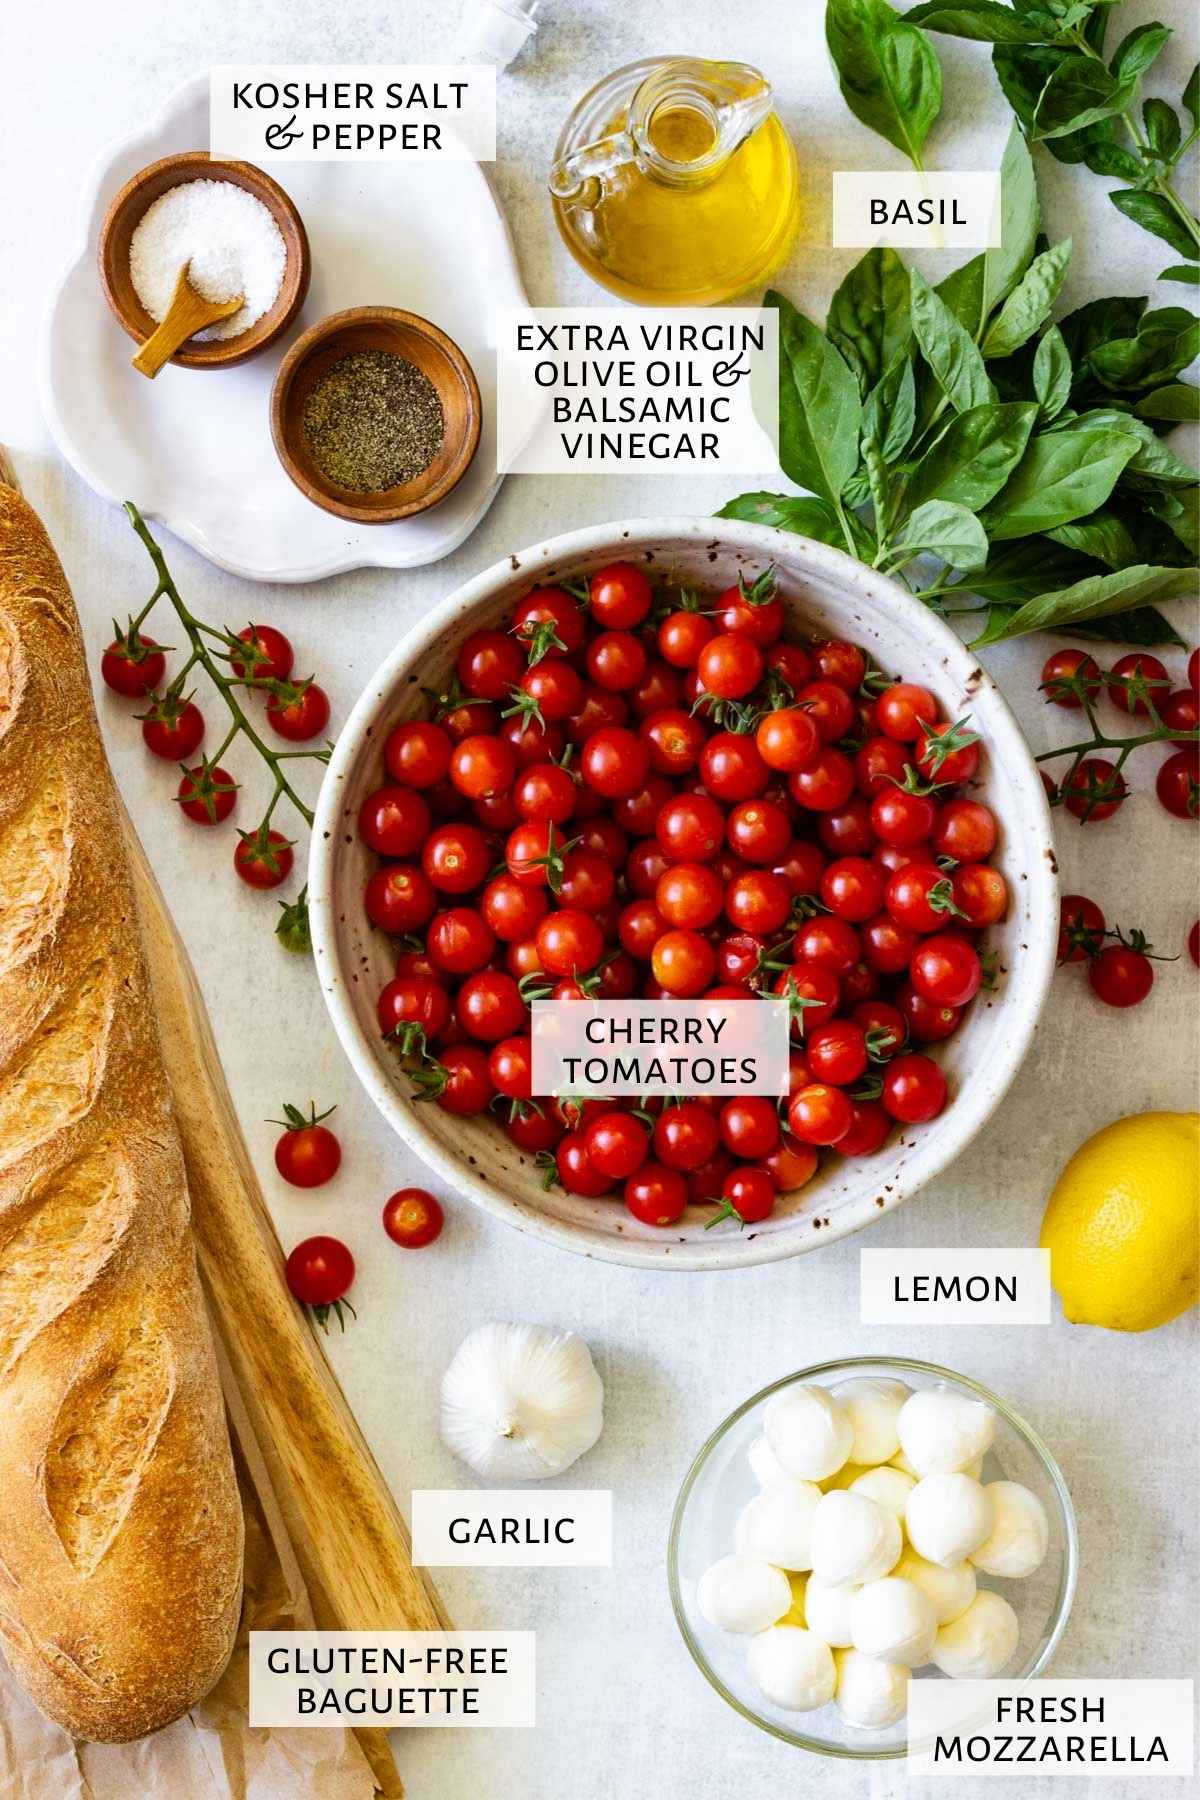 Ingredients for bruschetta with mozzarella are are set out on a marble countertop.